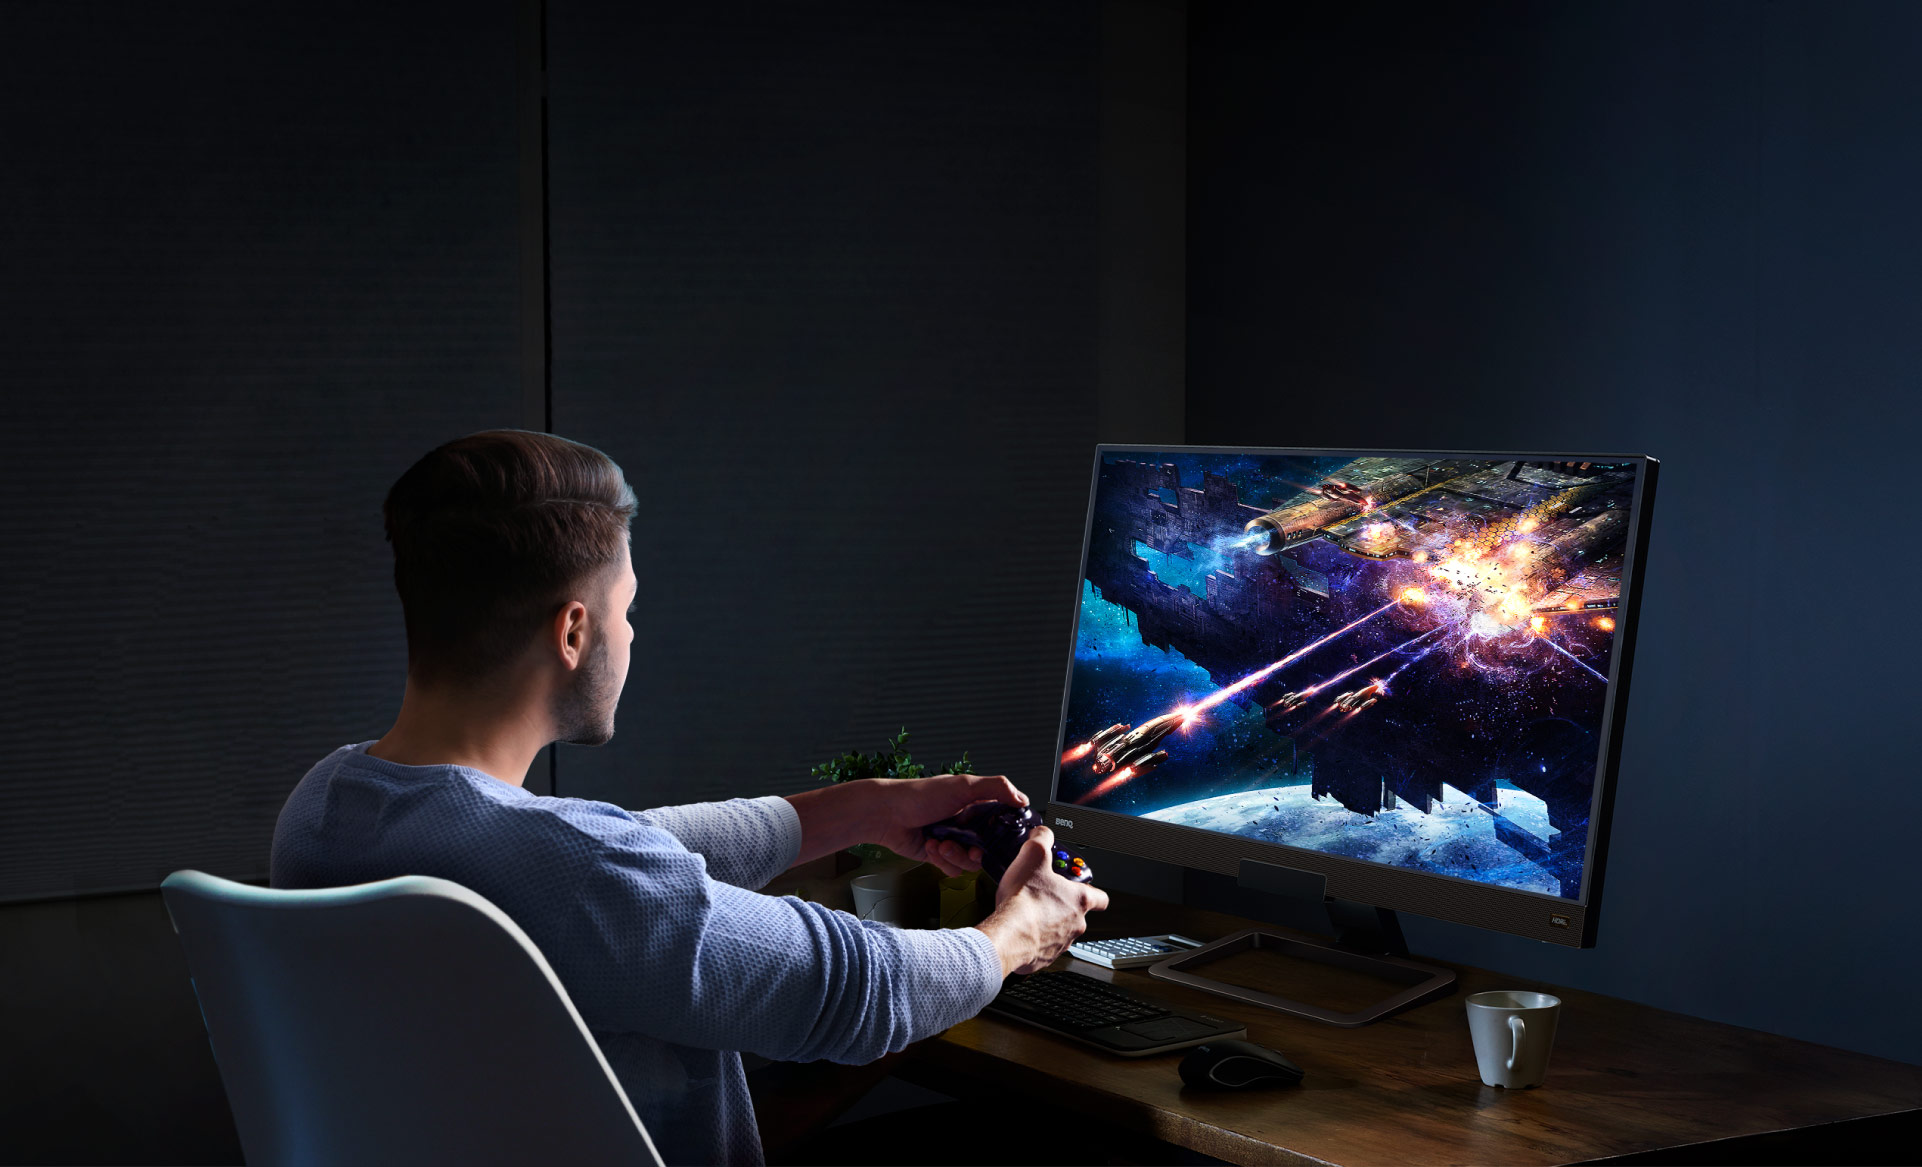 BenQ 4k gaming monitor EW3280U provides an exclusive eye-care technology which can reduce eye fatigue for user comfort and let you enjoy your entertainment time.